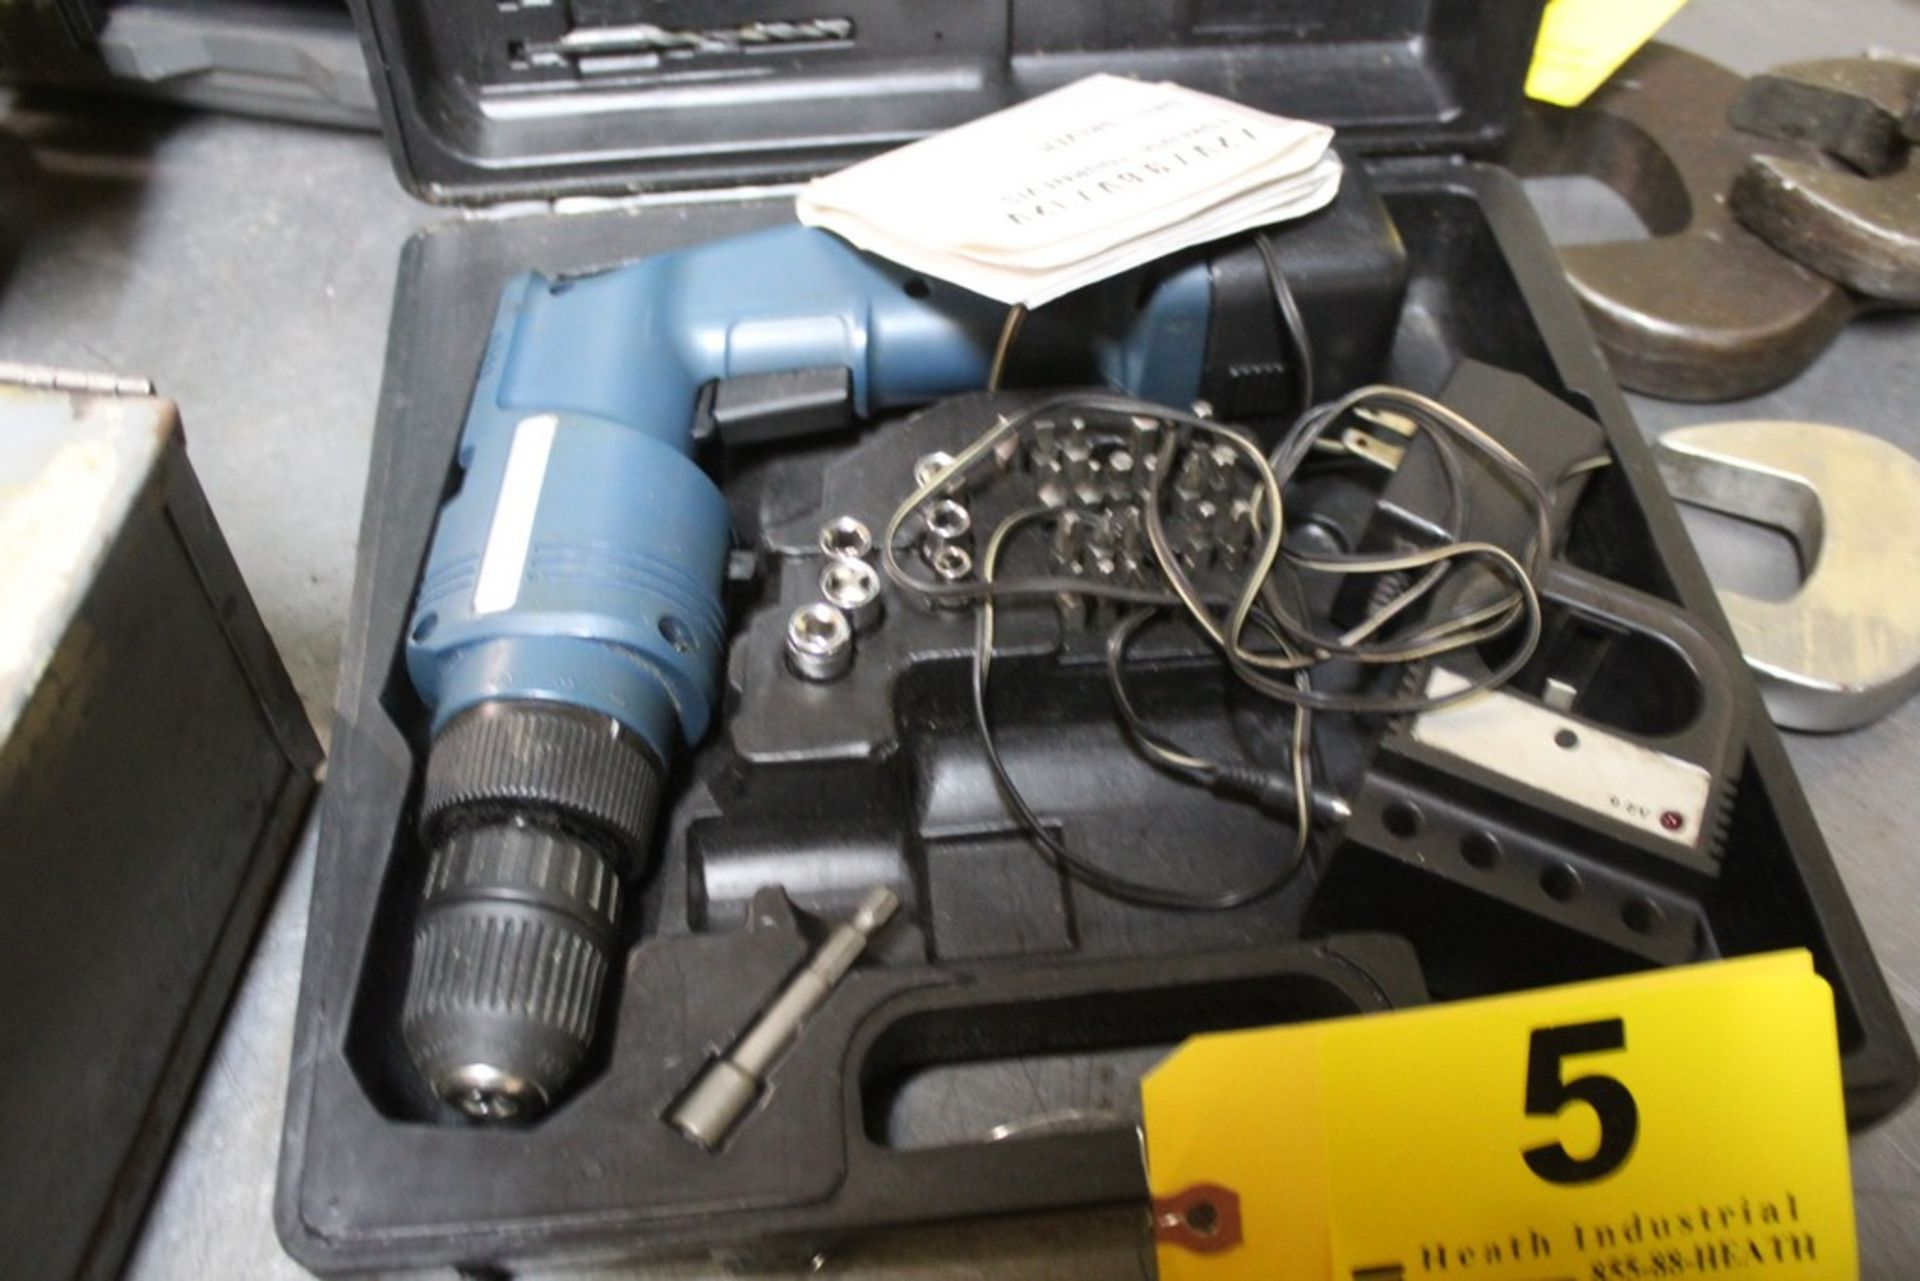 Lot 5 - 9.6 VOLT RECHARGEABLE DRILL DRIVER